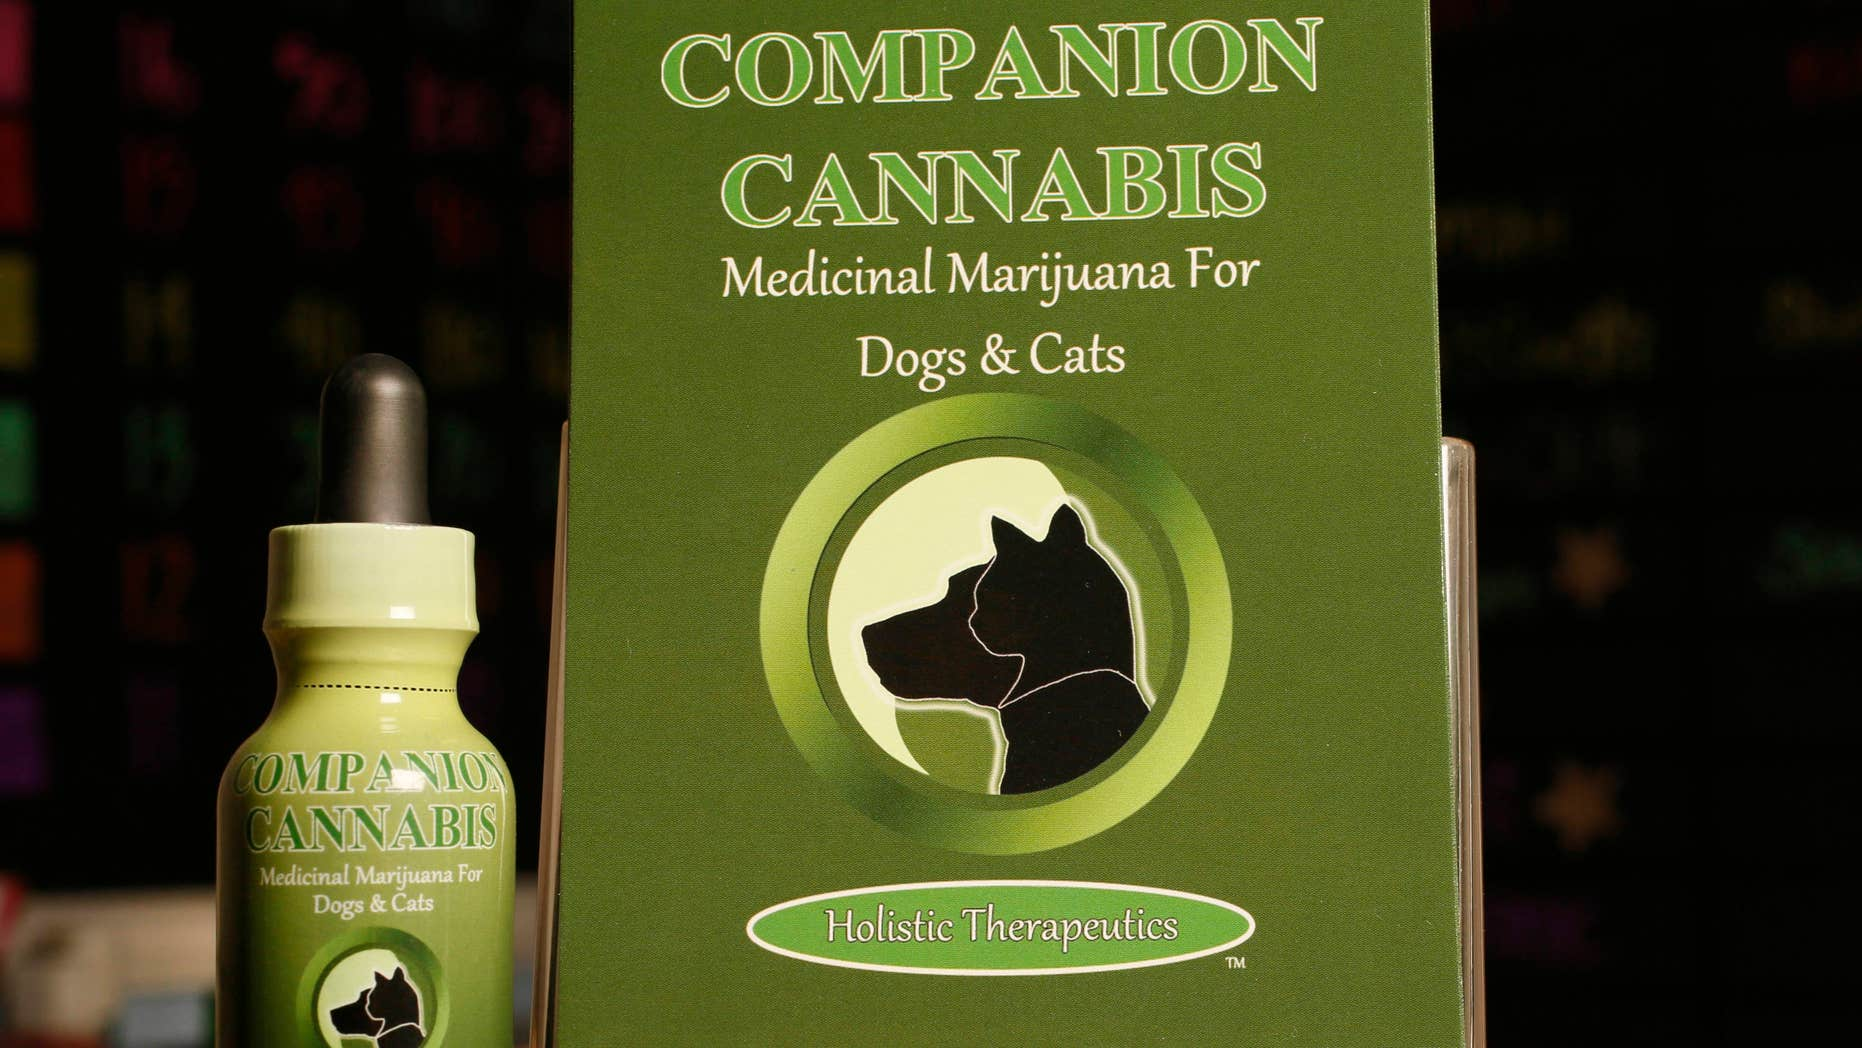 May 30, 2013: A Marijuana medicinal tincture for dogs and cats is displayed at La Brea Compassionate Caregivers, a medical marijuana dispensary in Los Angeles.